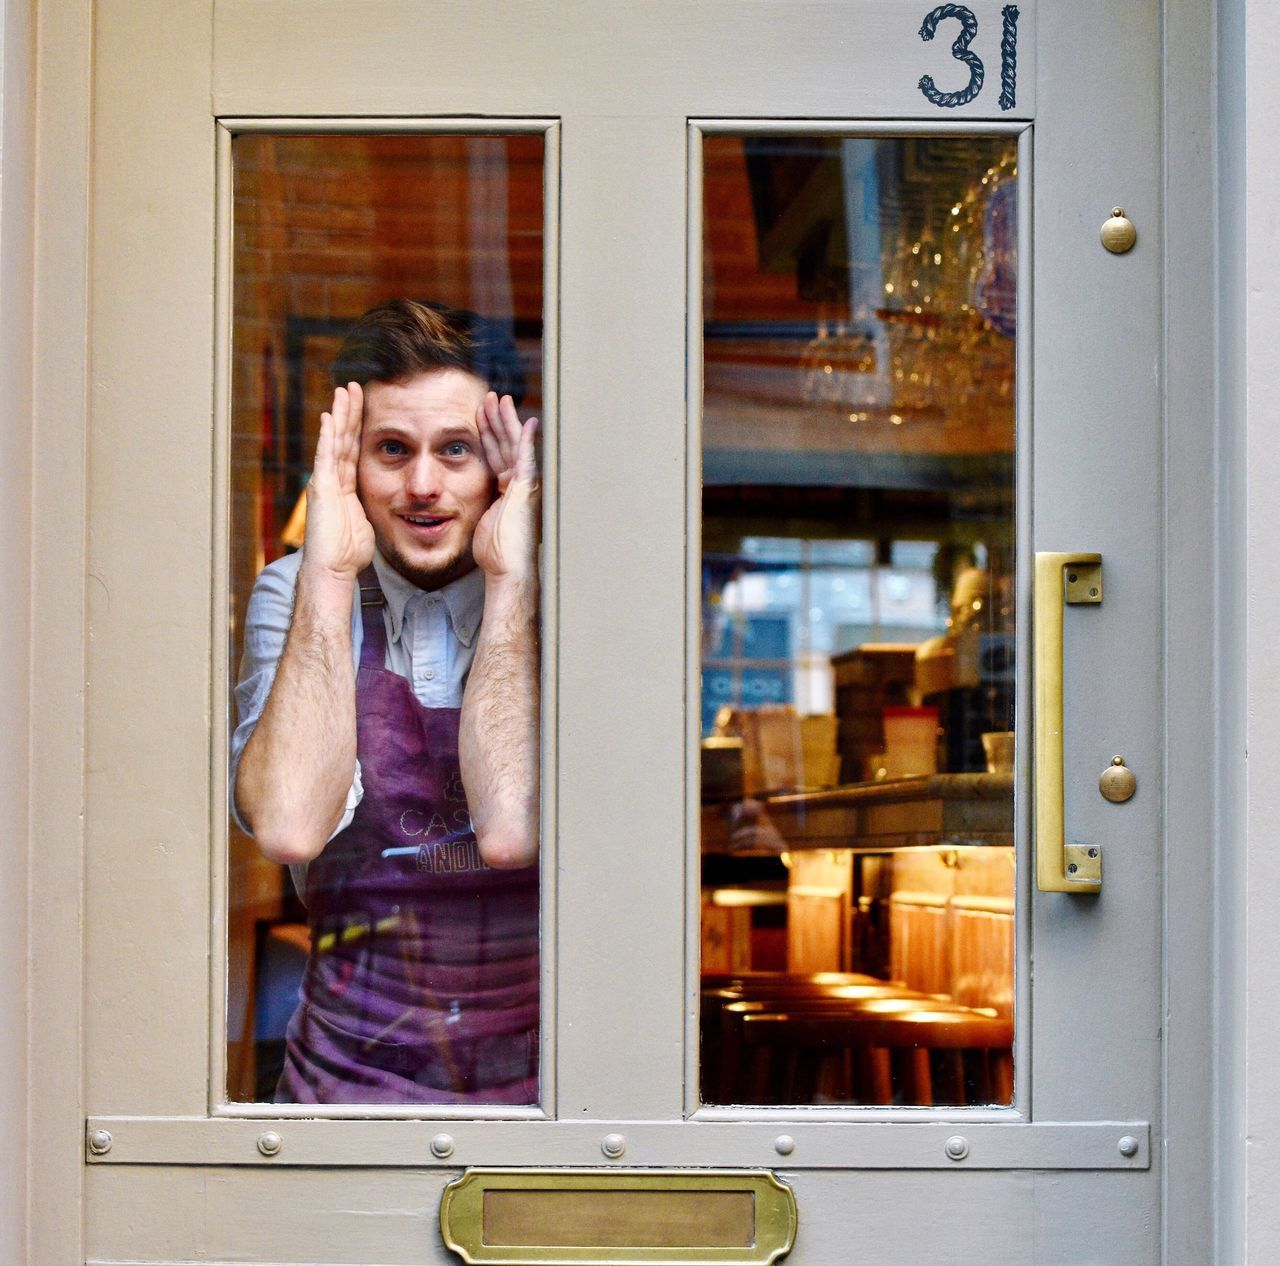 Looking through the window Looking At Camera Portrait Open Smiling Adults Only One Person Retail  Doorway Standing Mature Adult People Adult Indoors  One Man Only Day London Lifestyle Always Be Cozy My Year My View LONDON❤ Something Different Funny Faces Candid Portraits Candidshot Candid Sneak Shot Street Photography